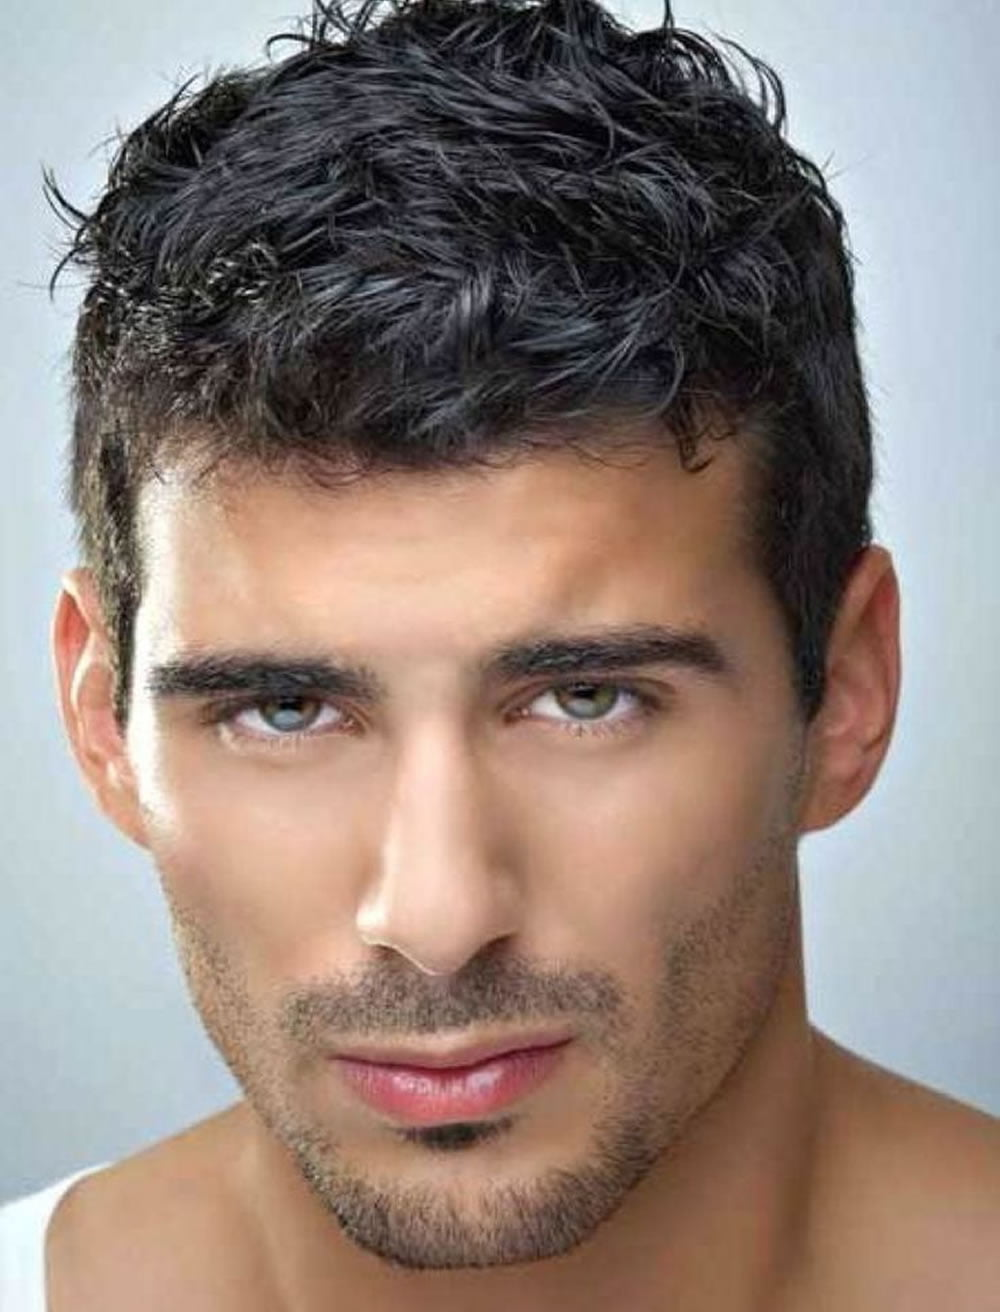 23 Cool short haircuts for men 2019 | Easy short ...